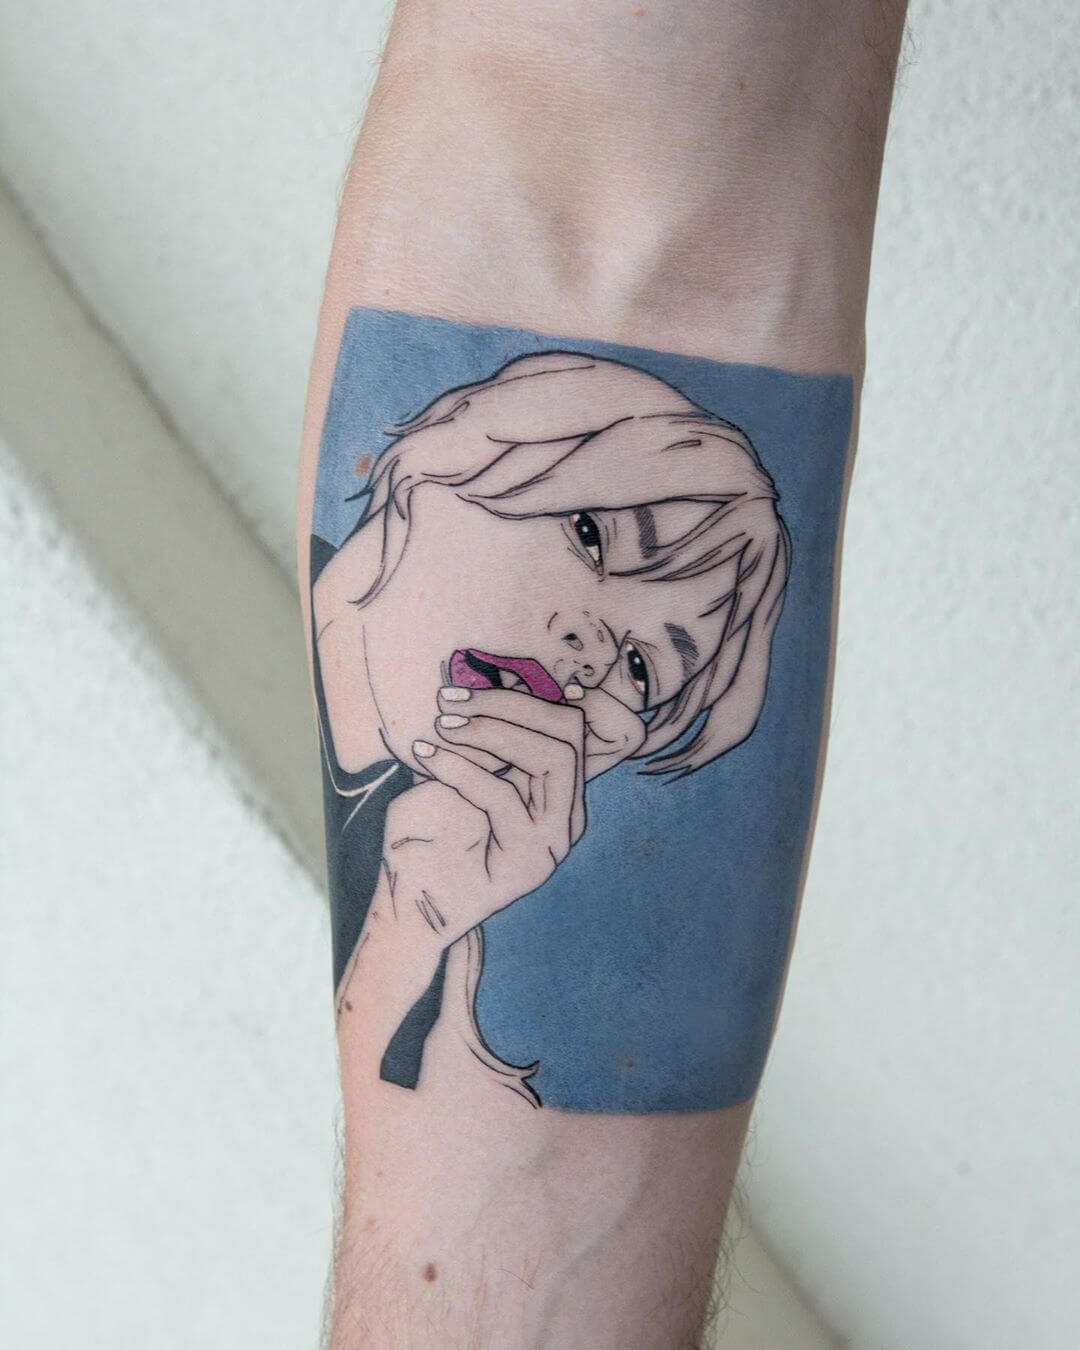 Badass woman portrait blue background tattoo by La Malafede